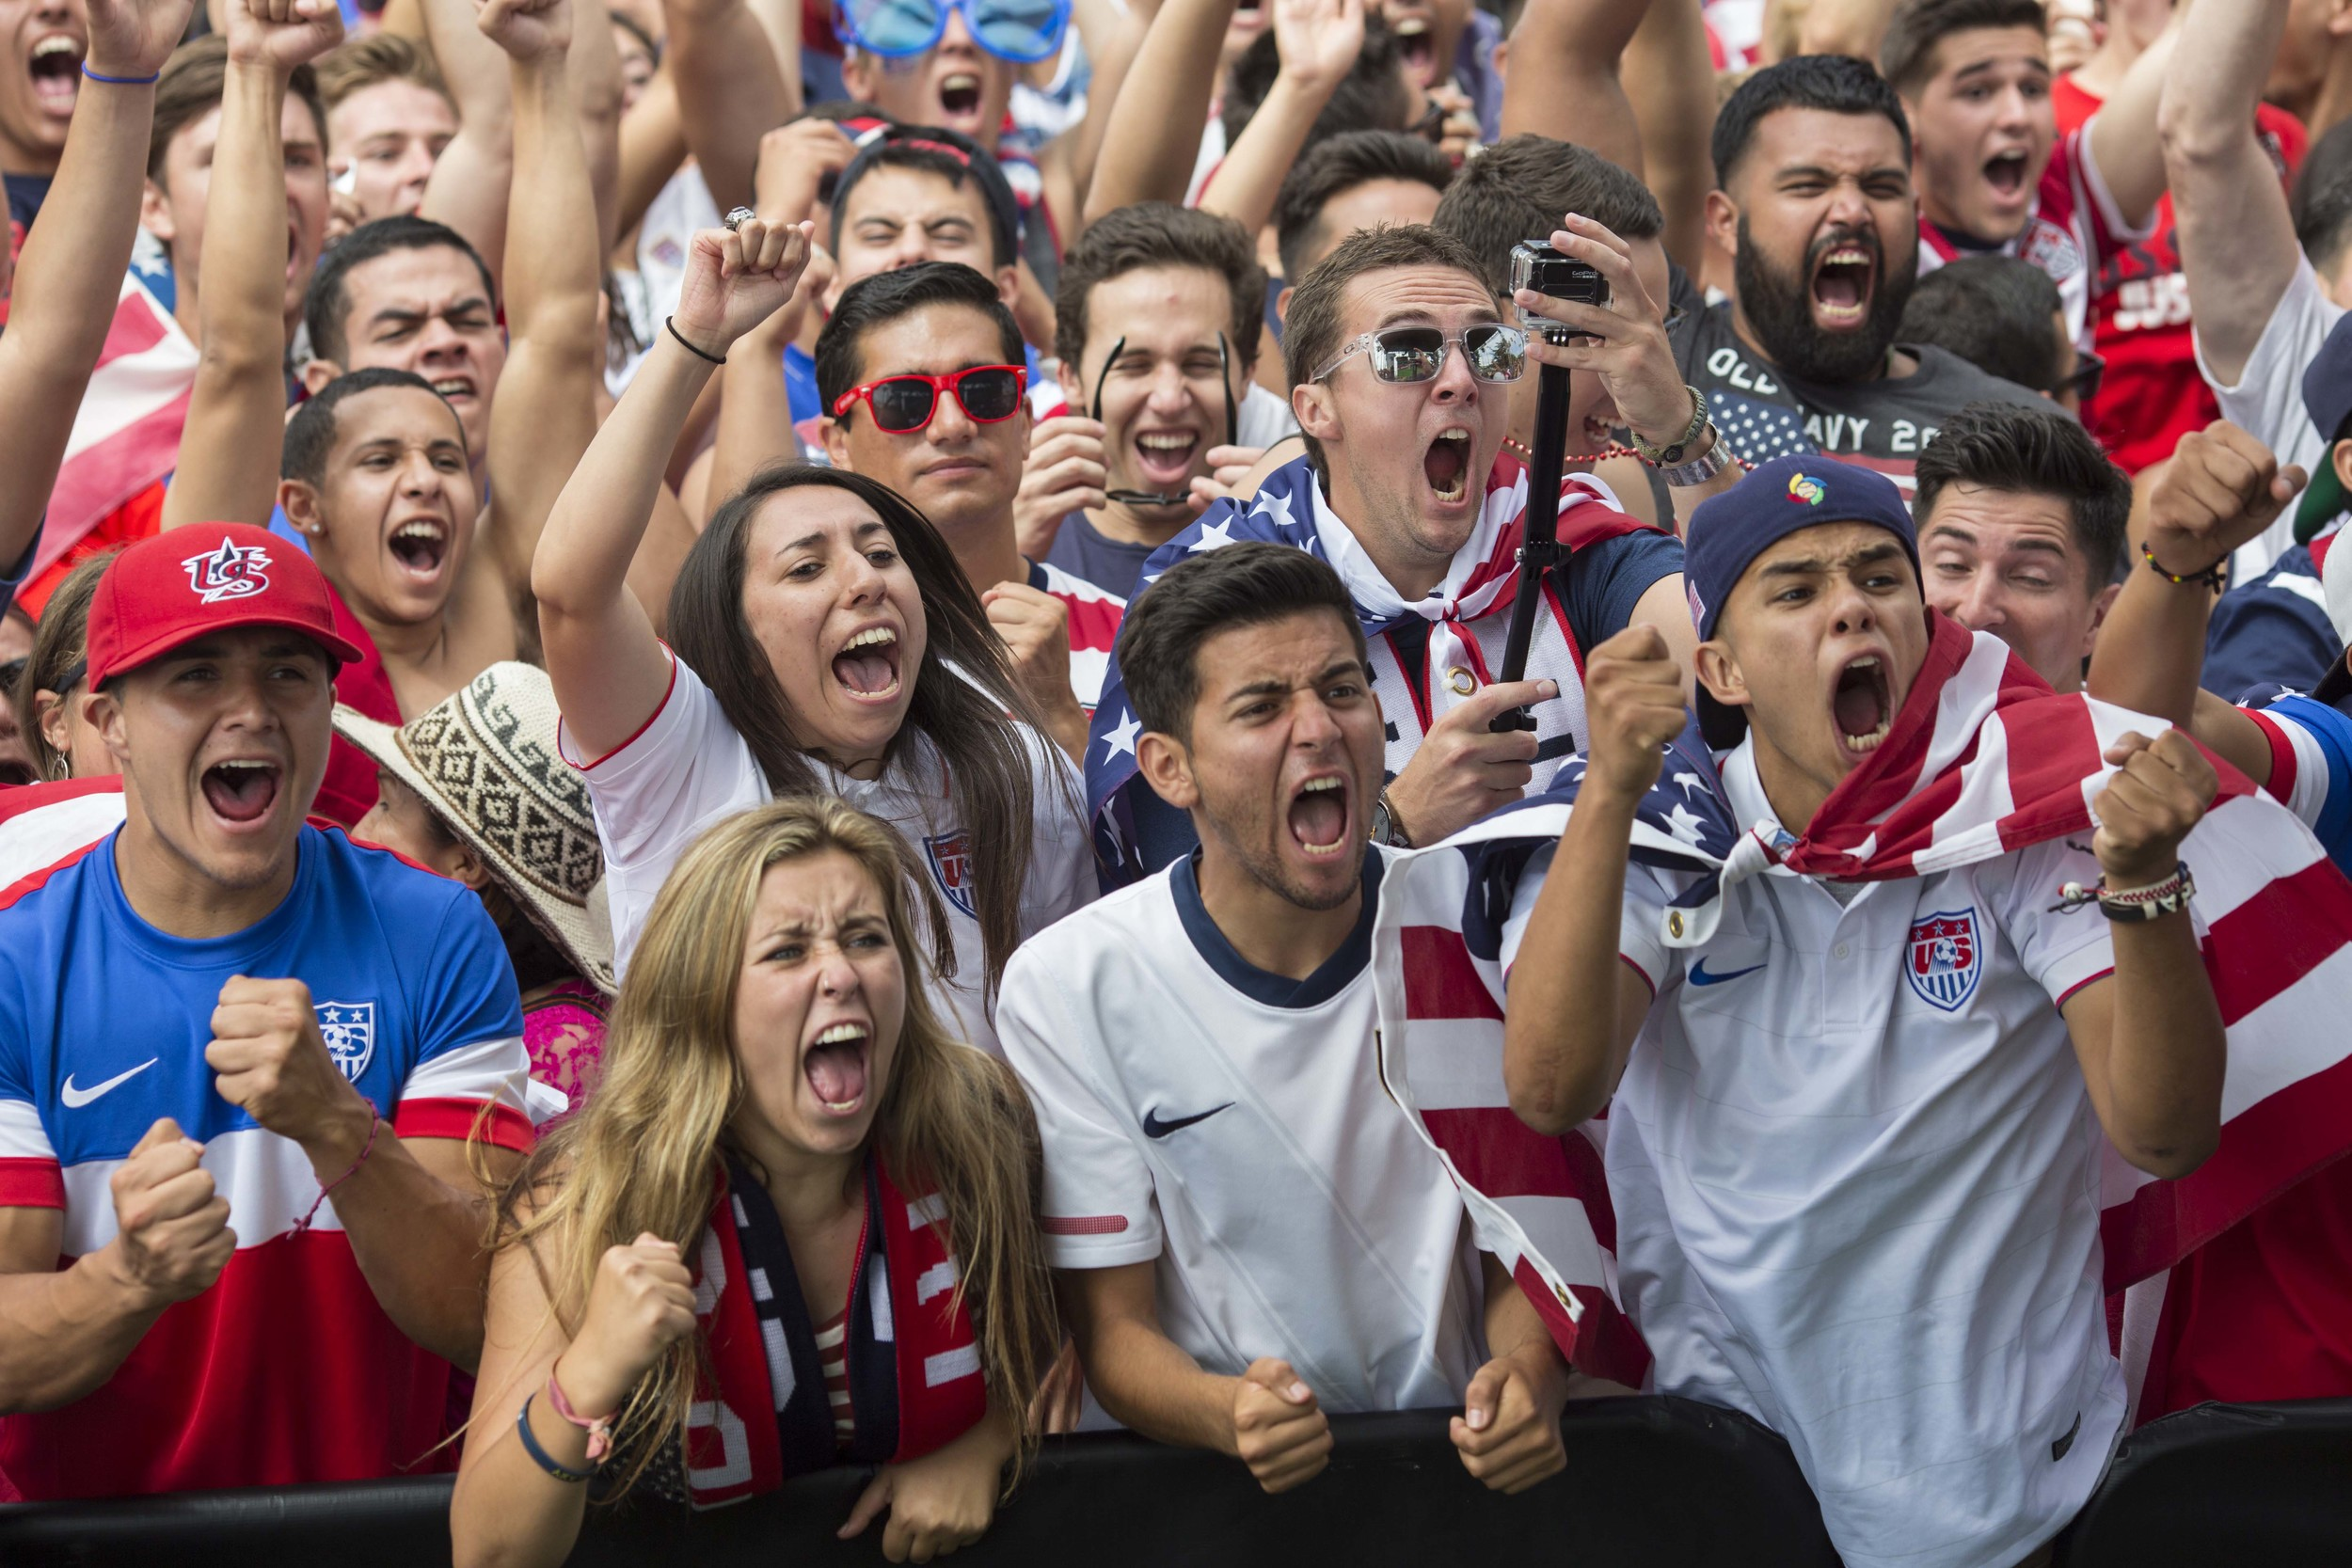 USA fans react as the US scores during overtime as the US soccer team takes on Belgium in the World Cup at a viewing party at Redondo Beach Pier in Los Angeles on Tuesday July 01, 2014. Belgium won 2-1 in overtime.